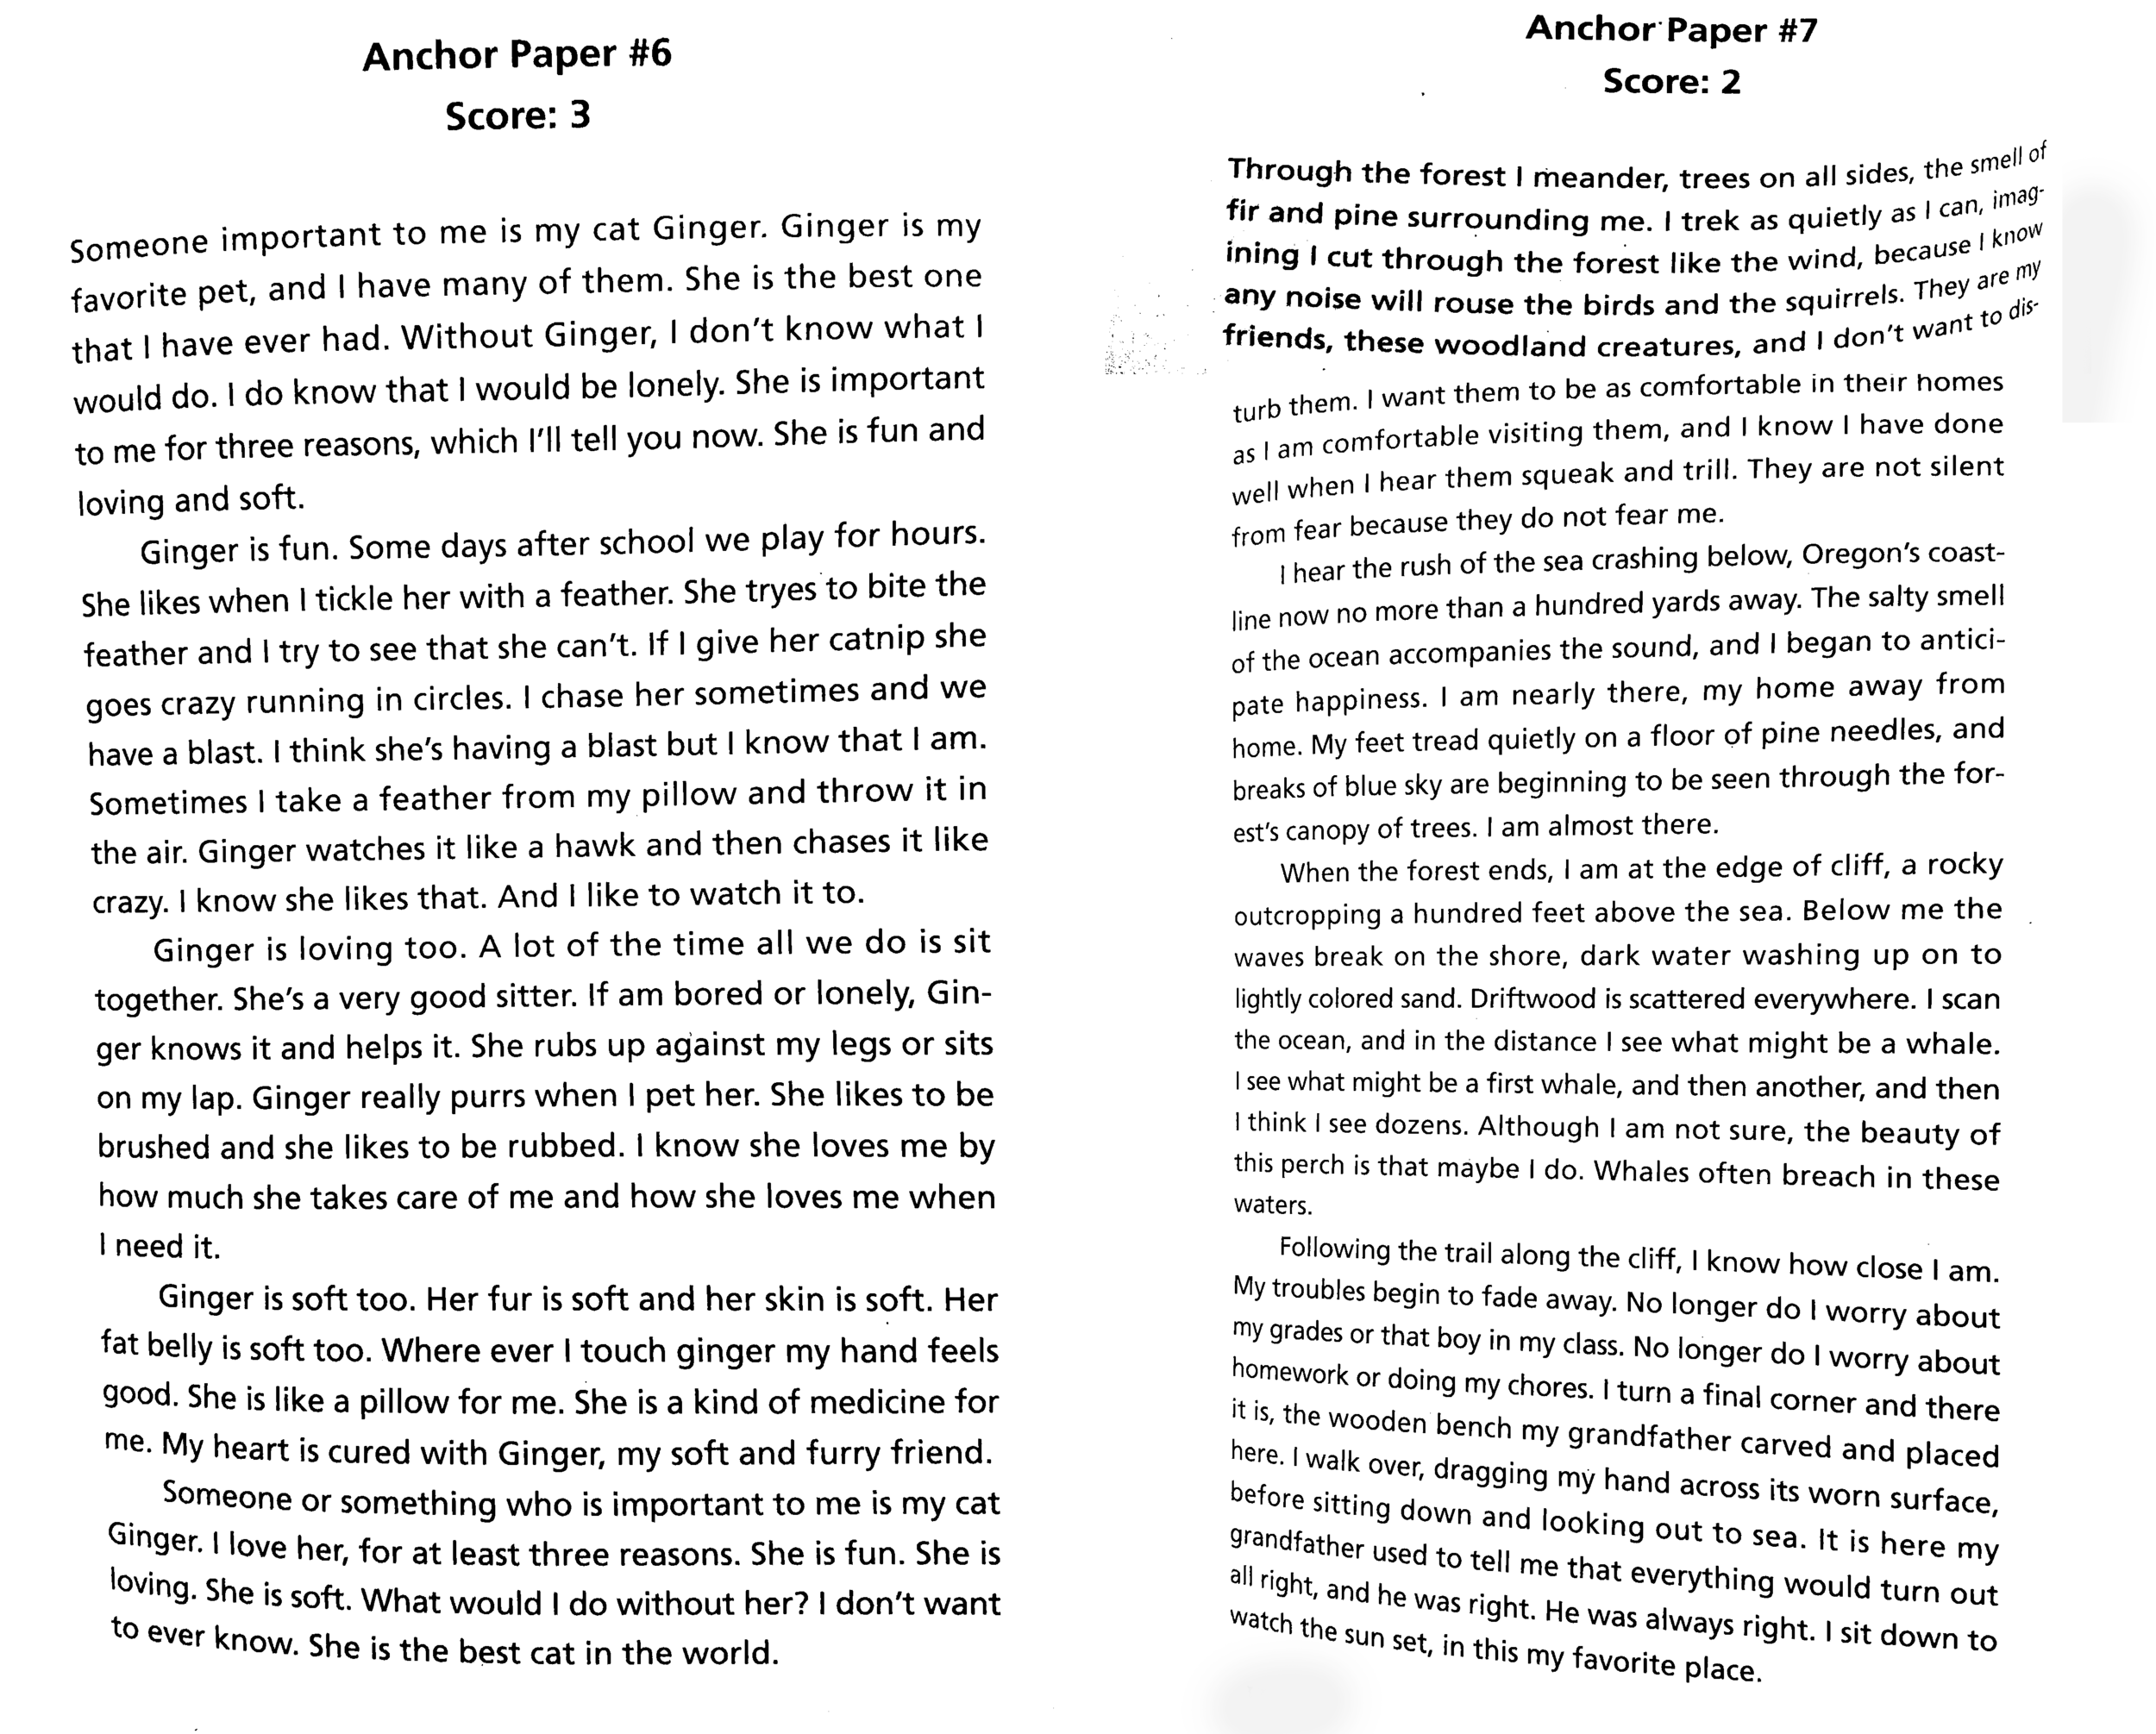 Anchor Paper #6 received a higher score because it is in a traditional 5-paragraph format. The instructions say to write a 5-paragraph response.